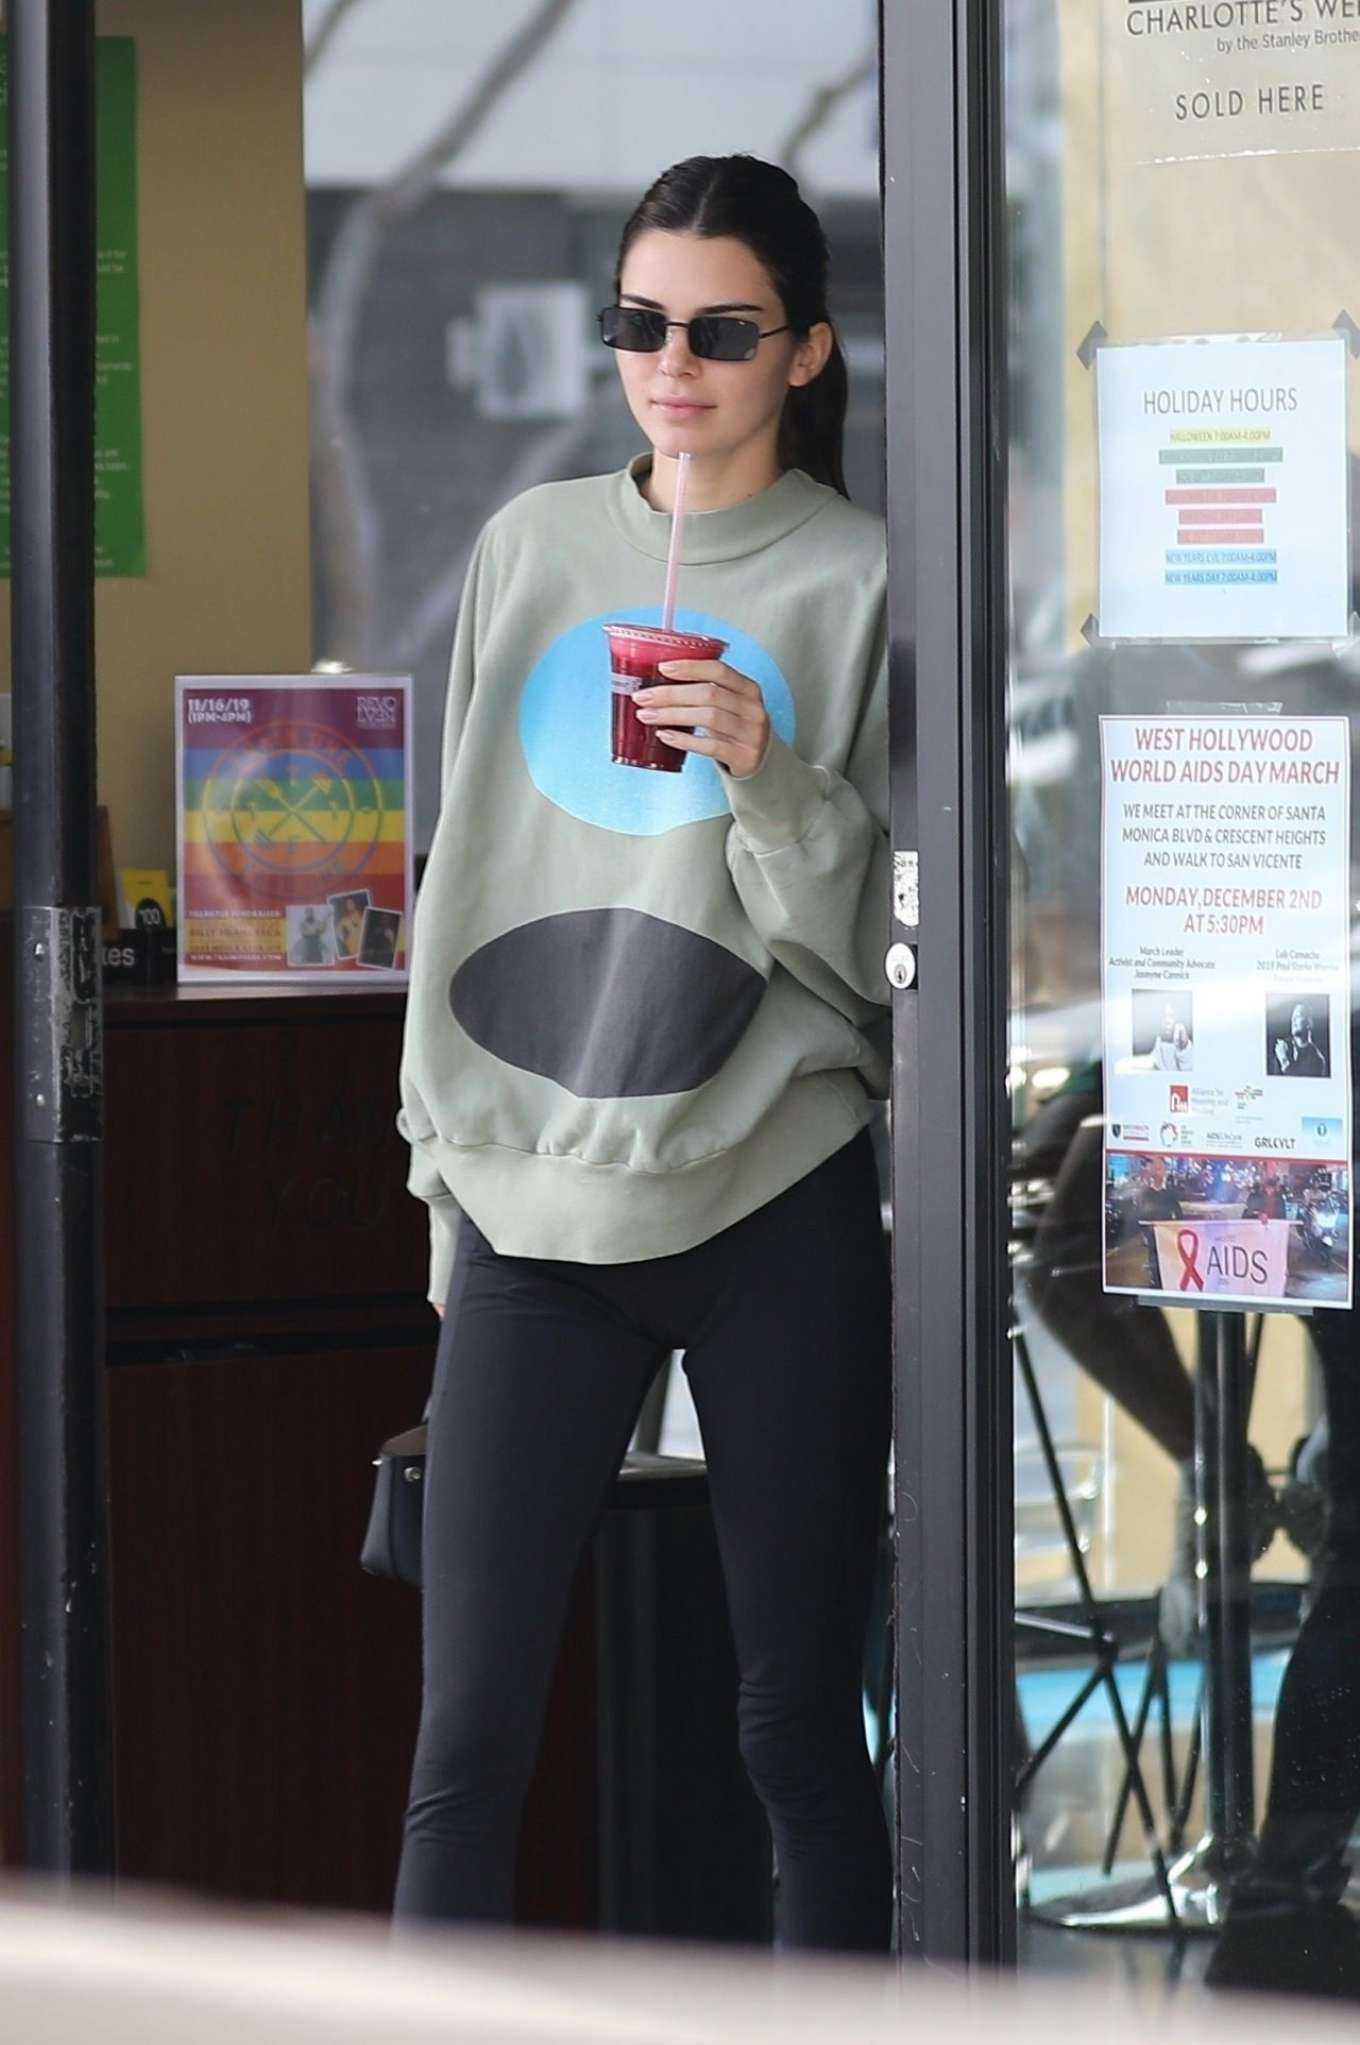 Kendall Jenner donning chunky neon black green lace-up trainers